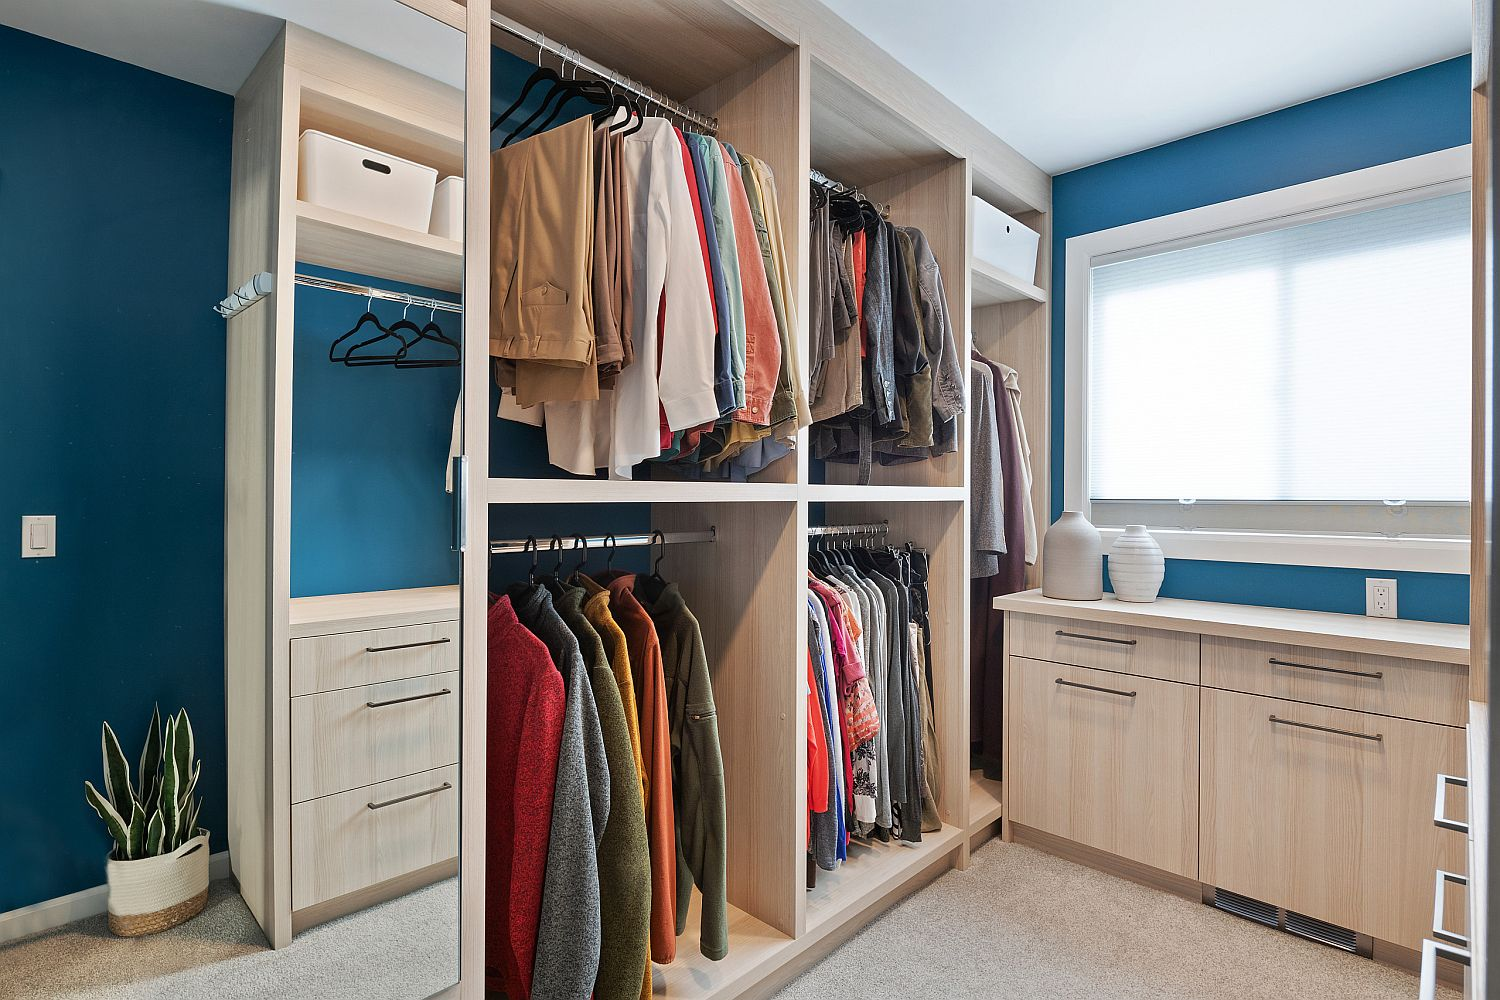 Gender-neutral closet with a simple design in wood